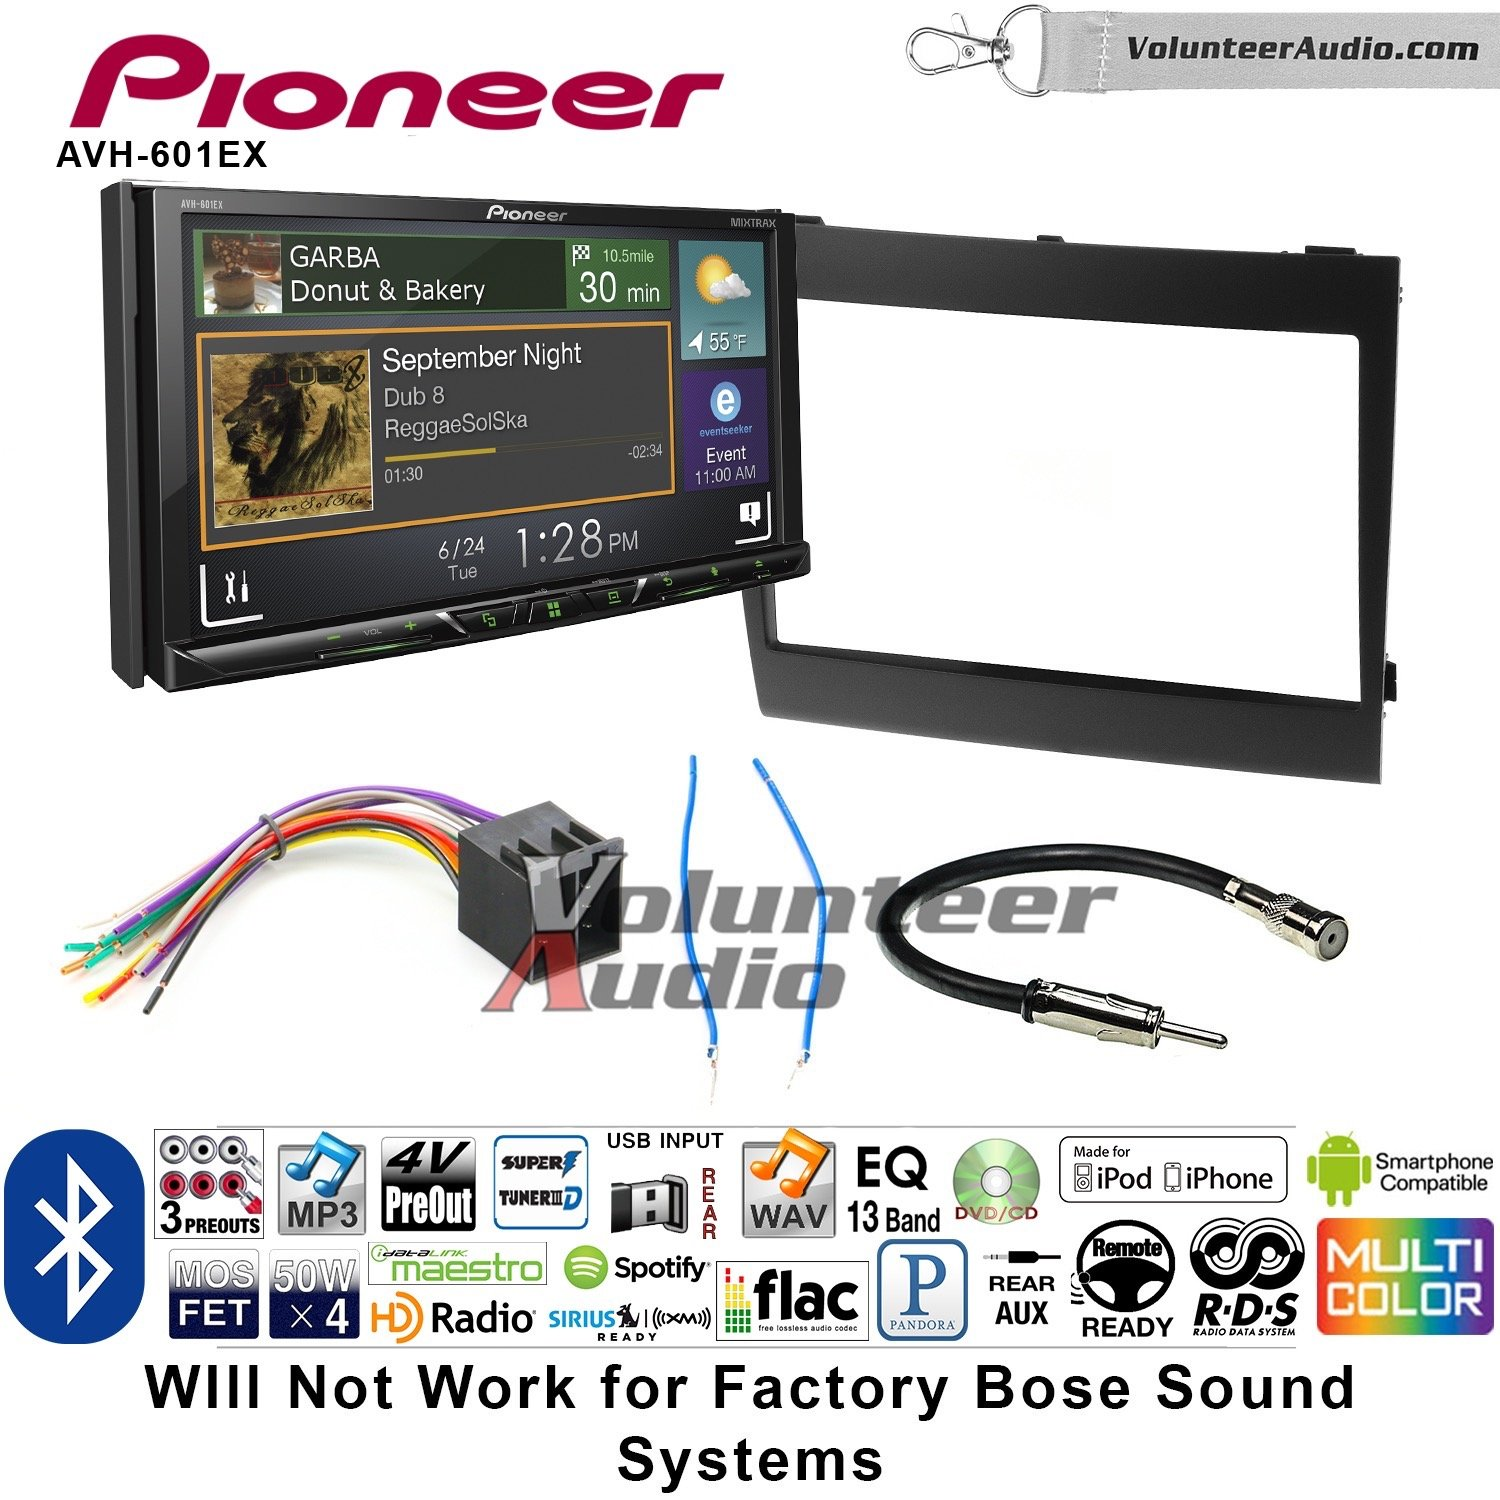 Volunteer Audio Pioneer AVH-601EX Double Din Radio Install Kit with CD/DVD Player Bluetooth USB/AUX Fits 2004-2006 Pontiac GTO